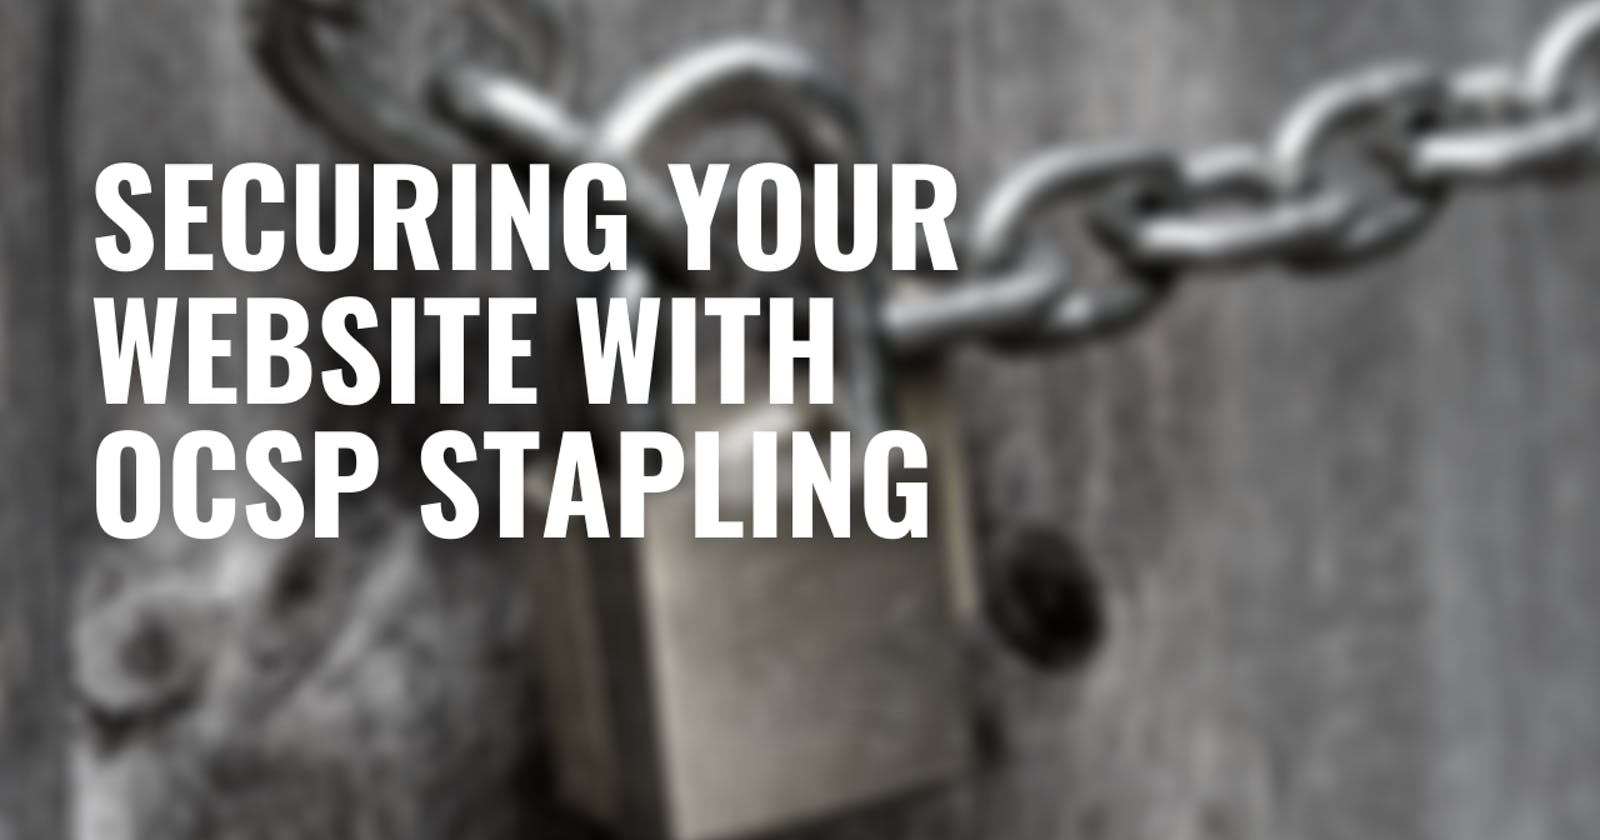 Using OCSP Stapling to secure and speed up your website